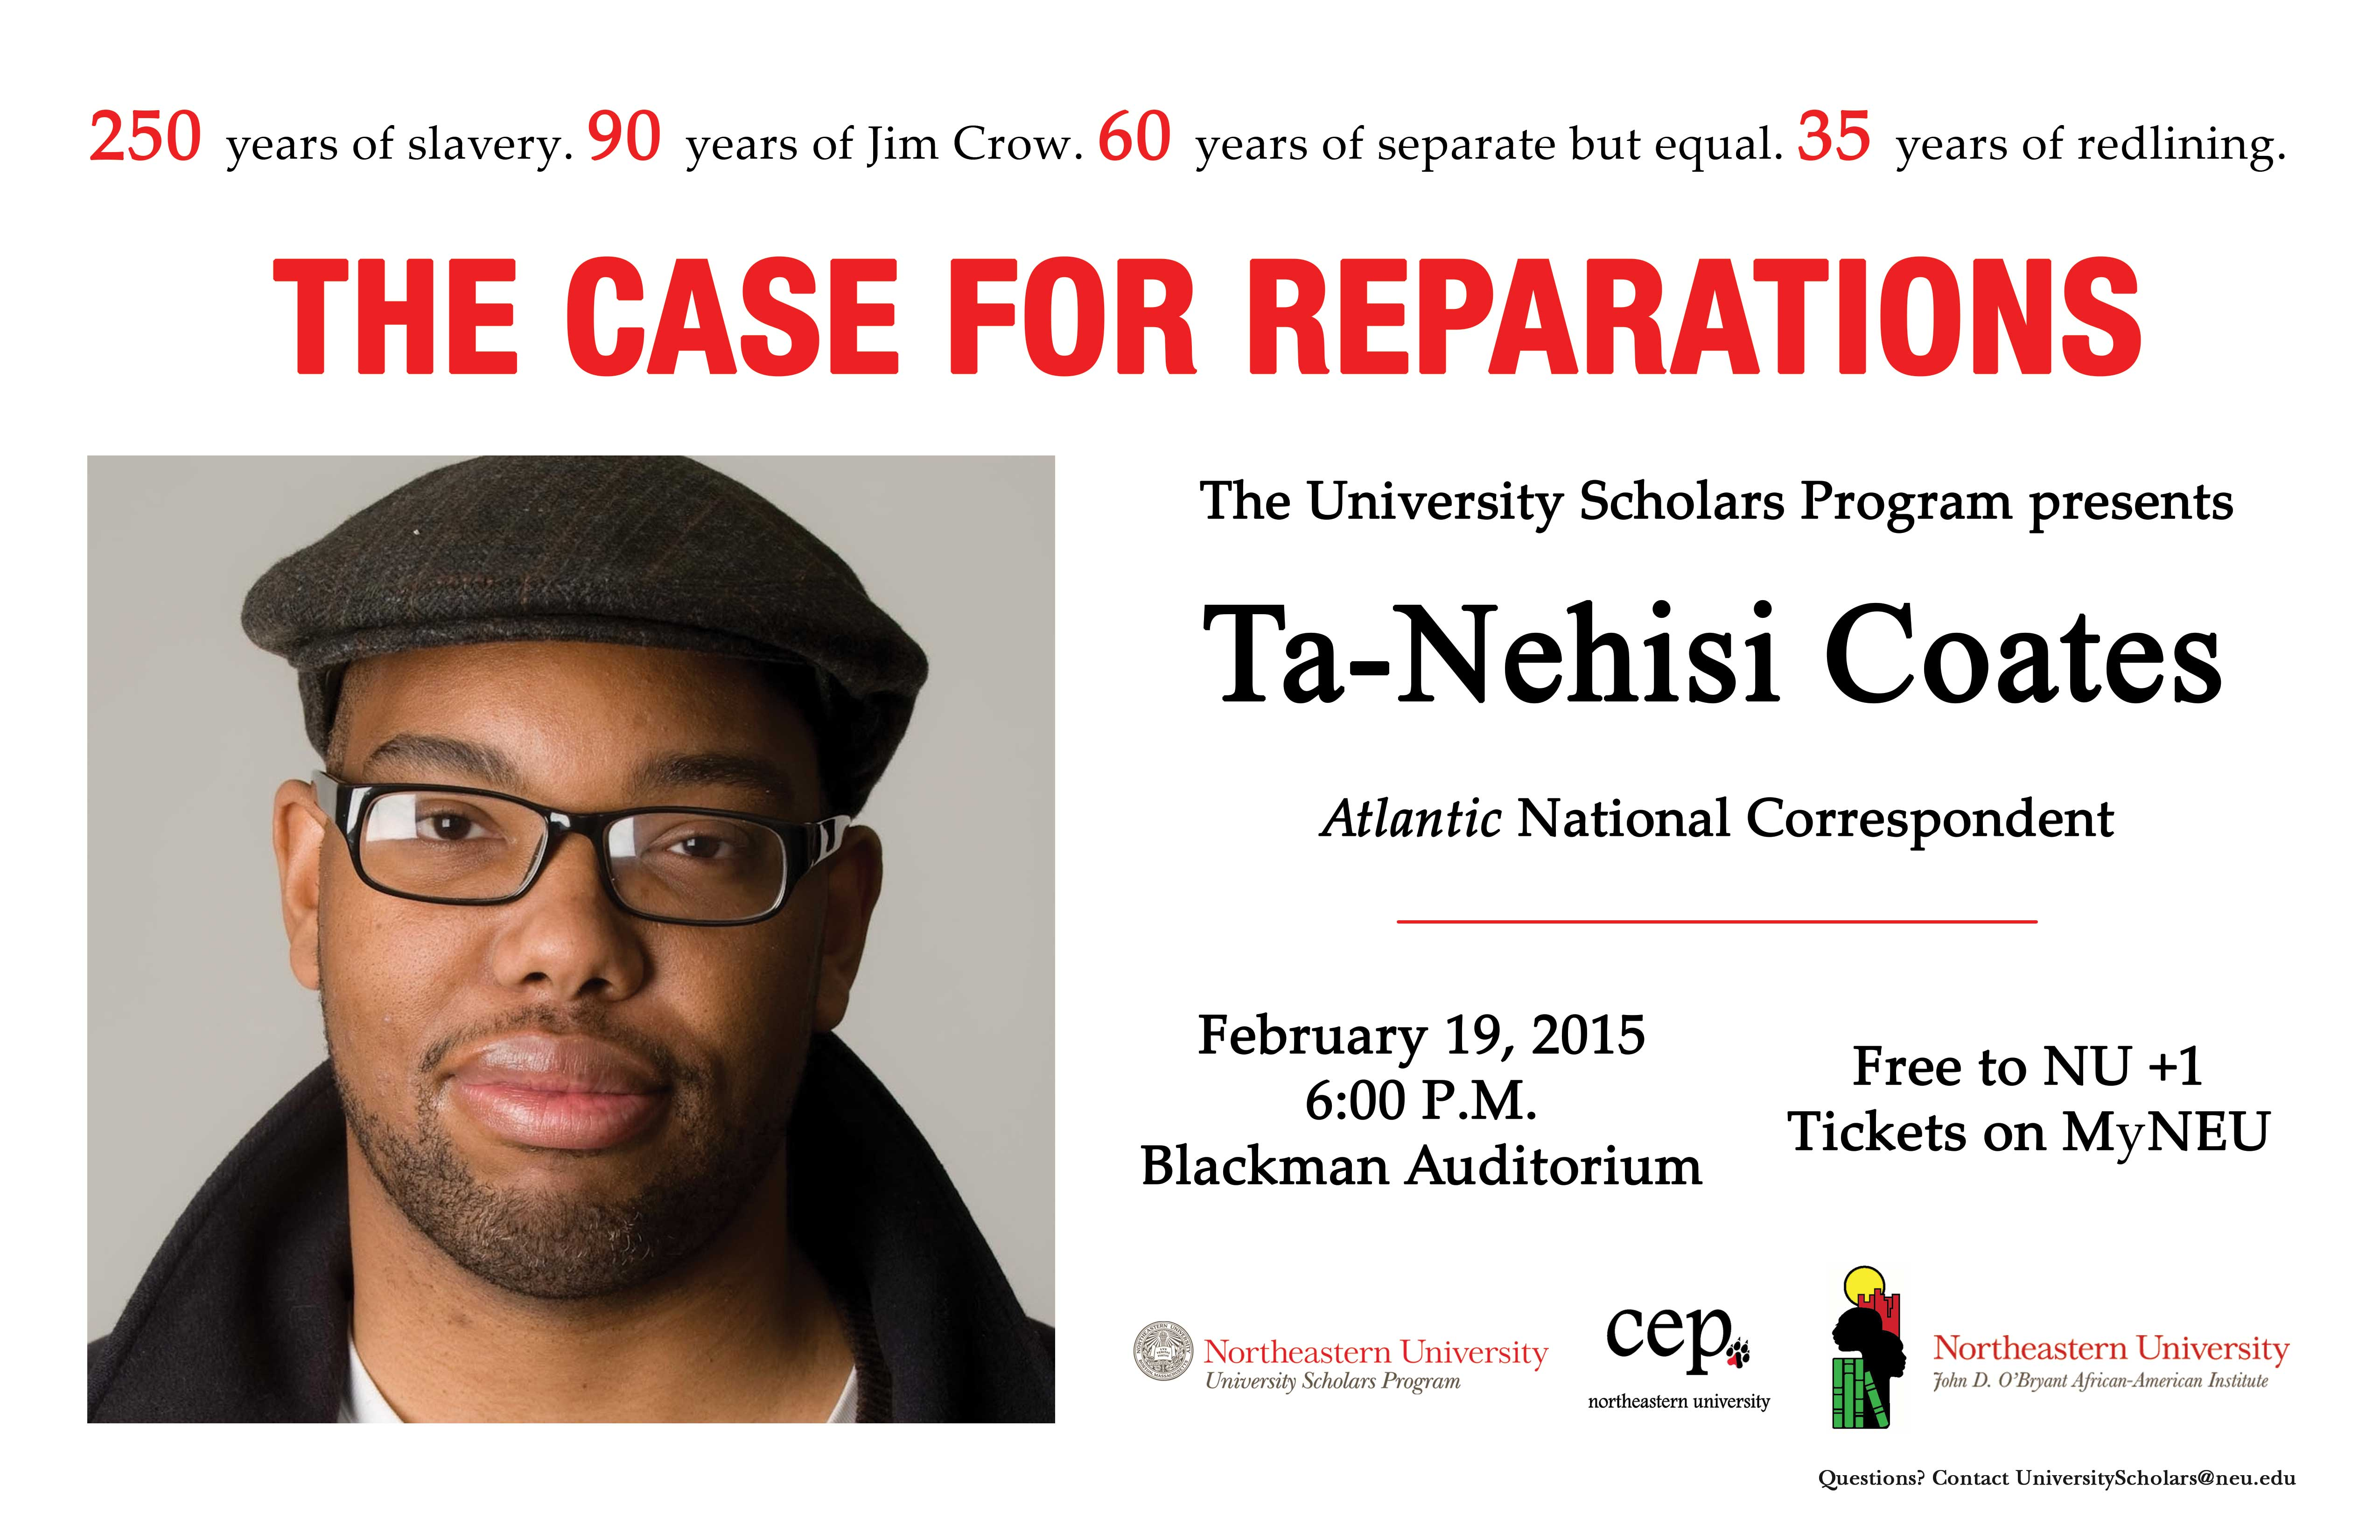 an argument against slavery reparations Ta-nehisi coates makes a powerful, but flawed, argument for reparations.